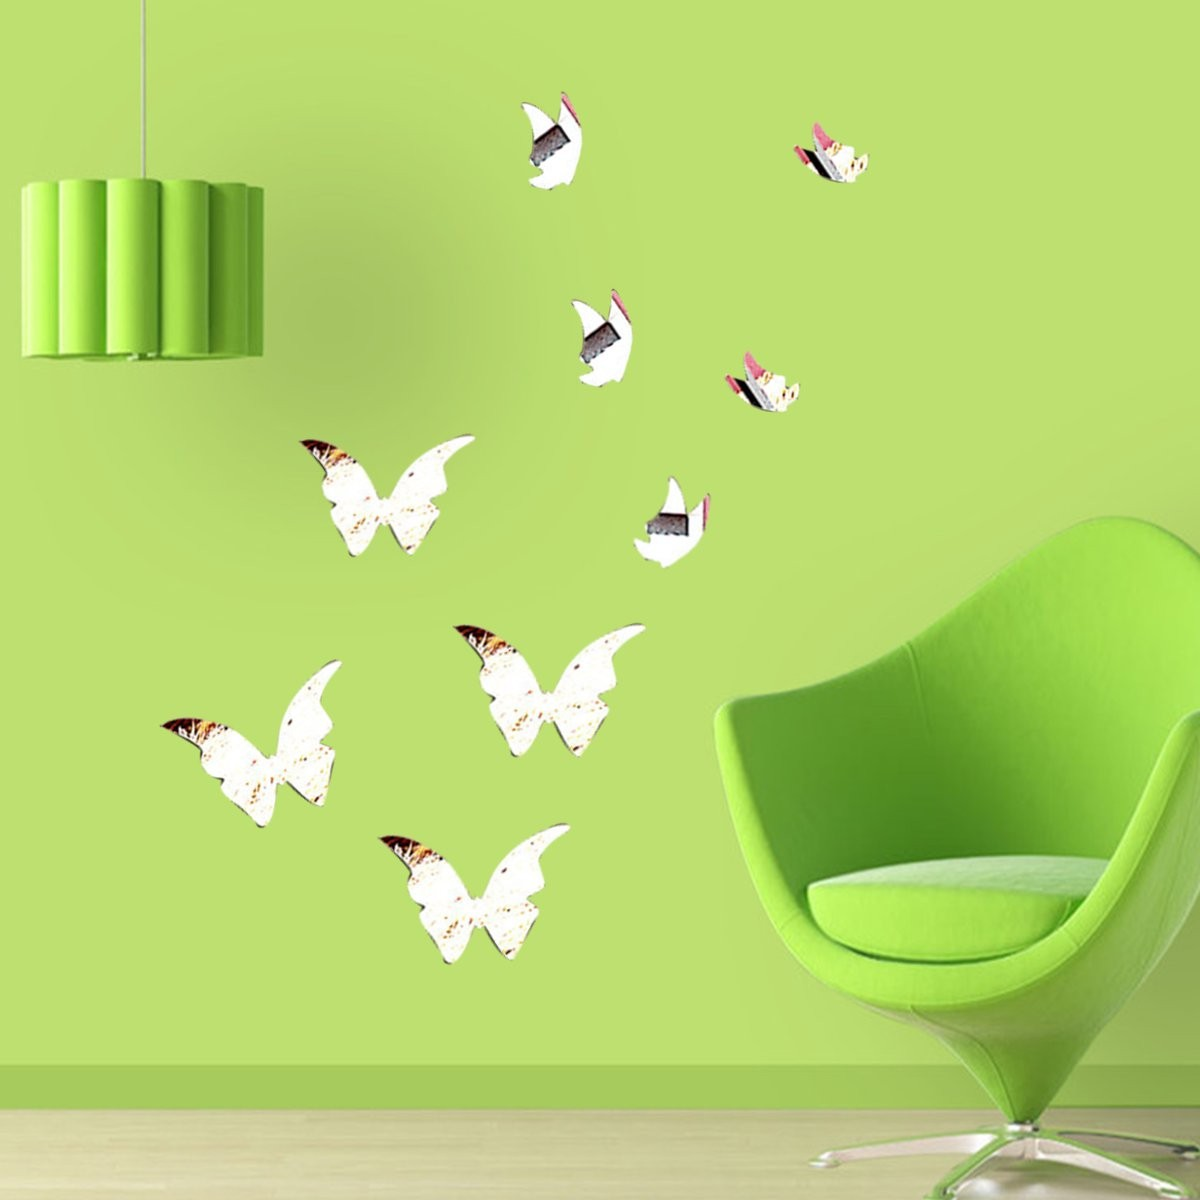 Butterfly Mirror Wall Decoration : Butterfly mirror wall sticker art decal decoration diy